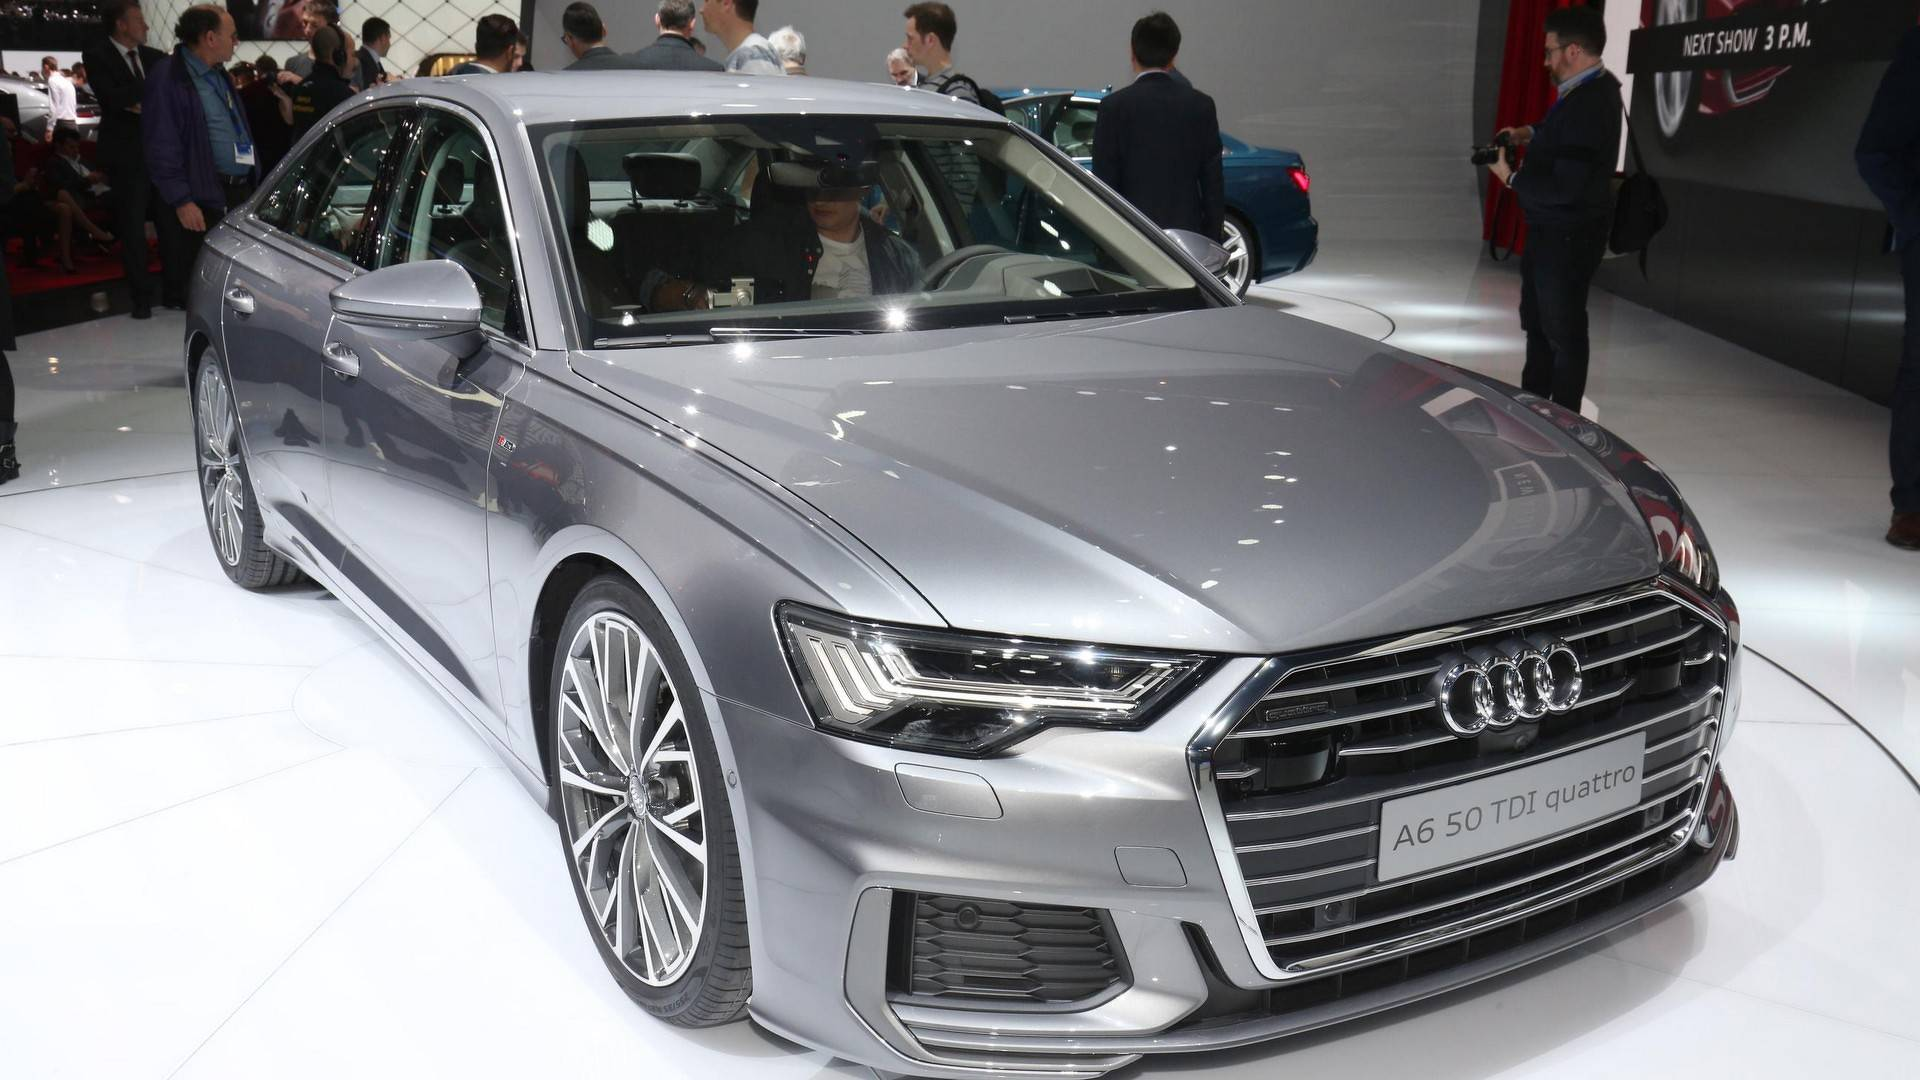 2019 Audi A6 Live From Geneva Motor Show